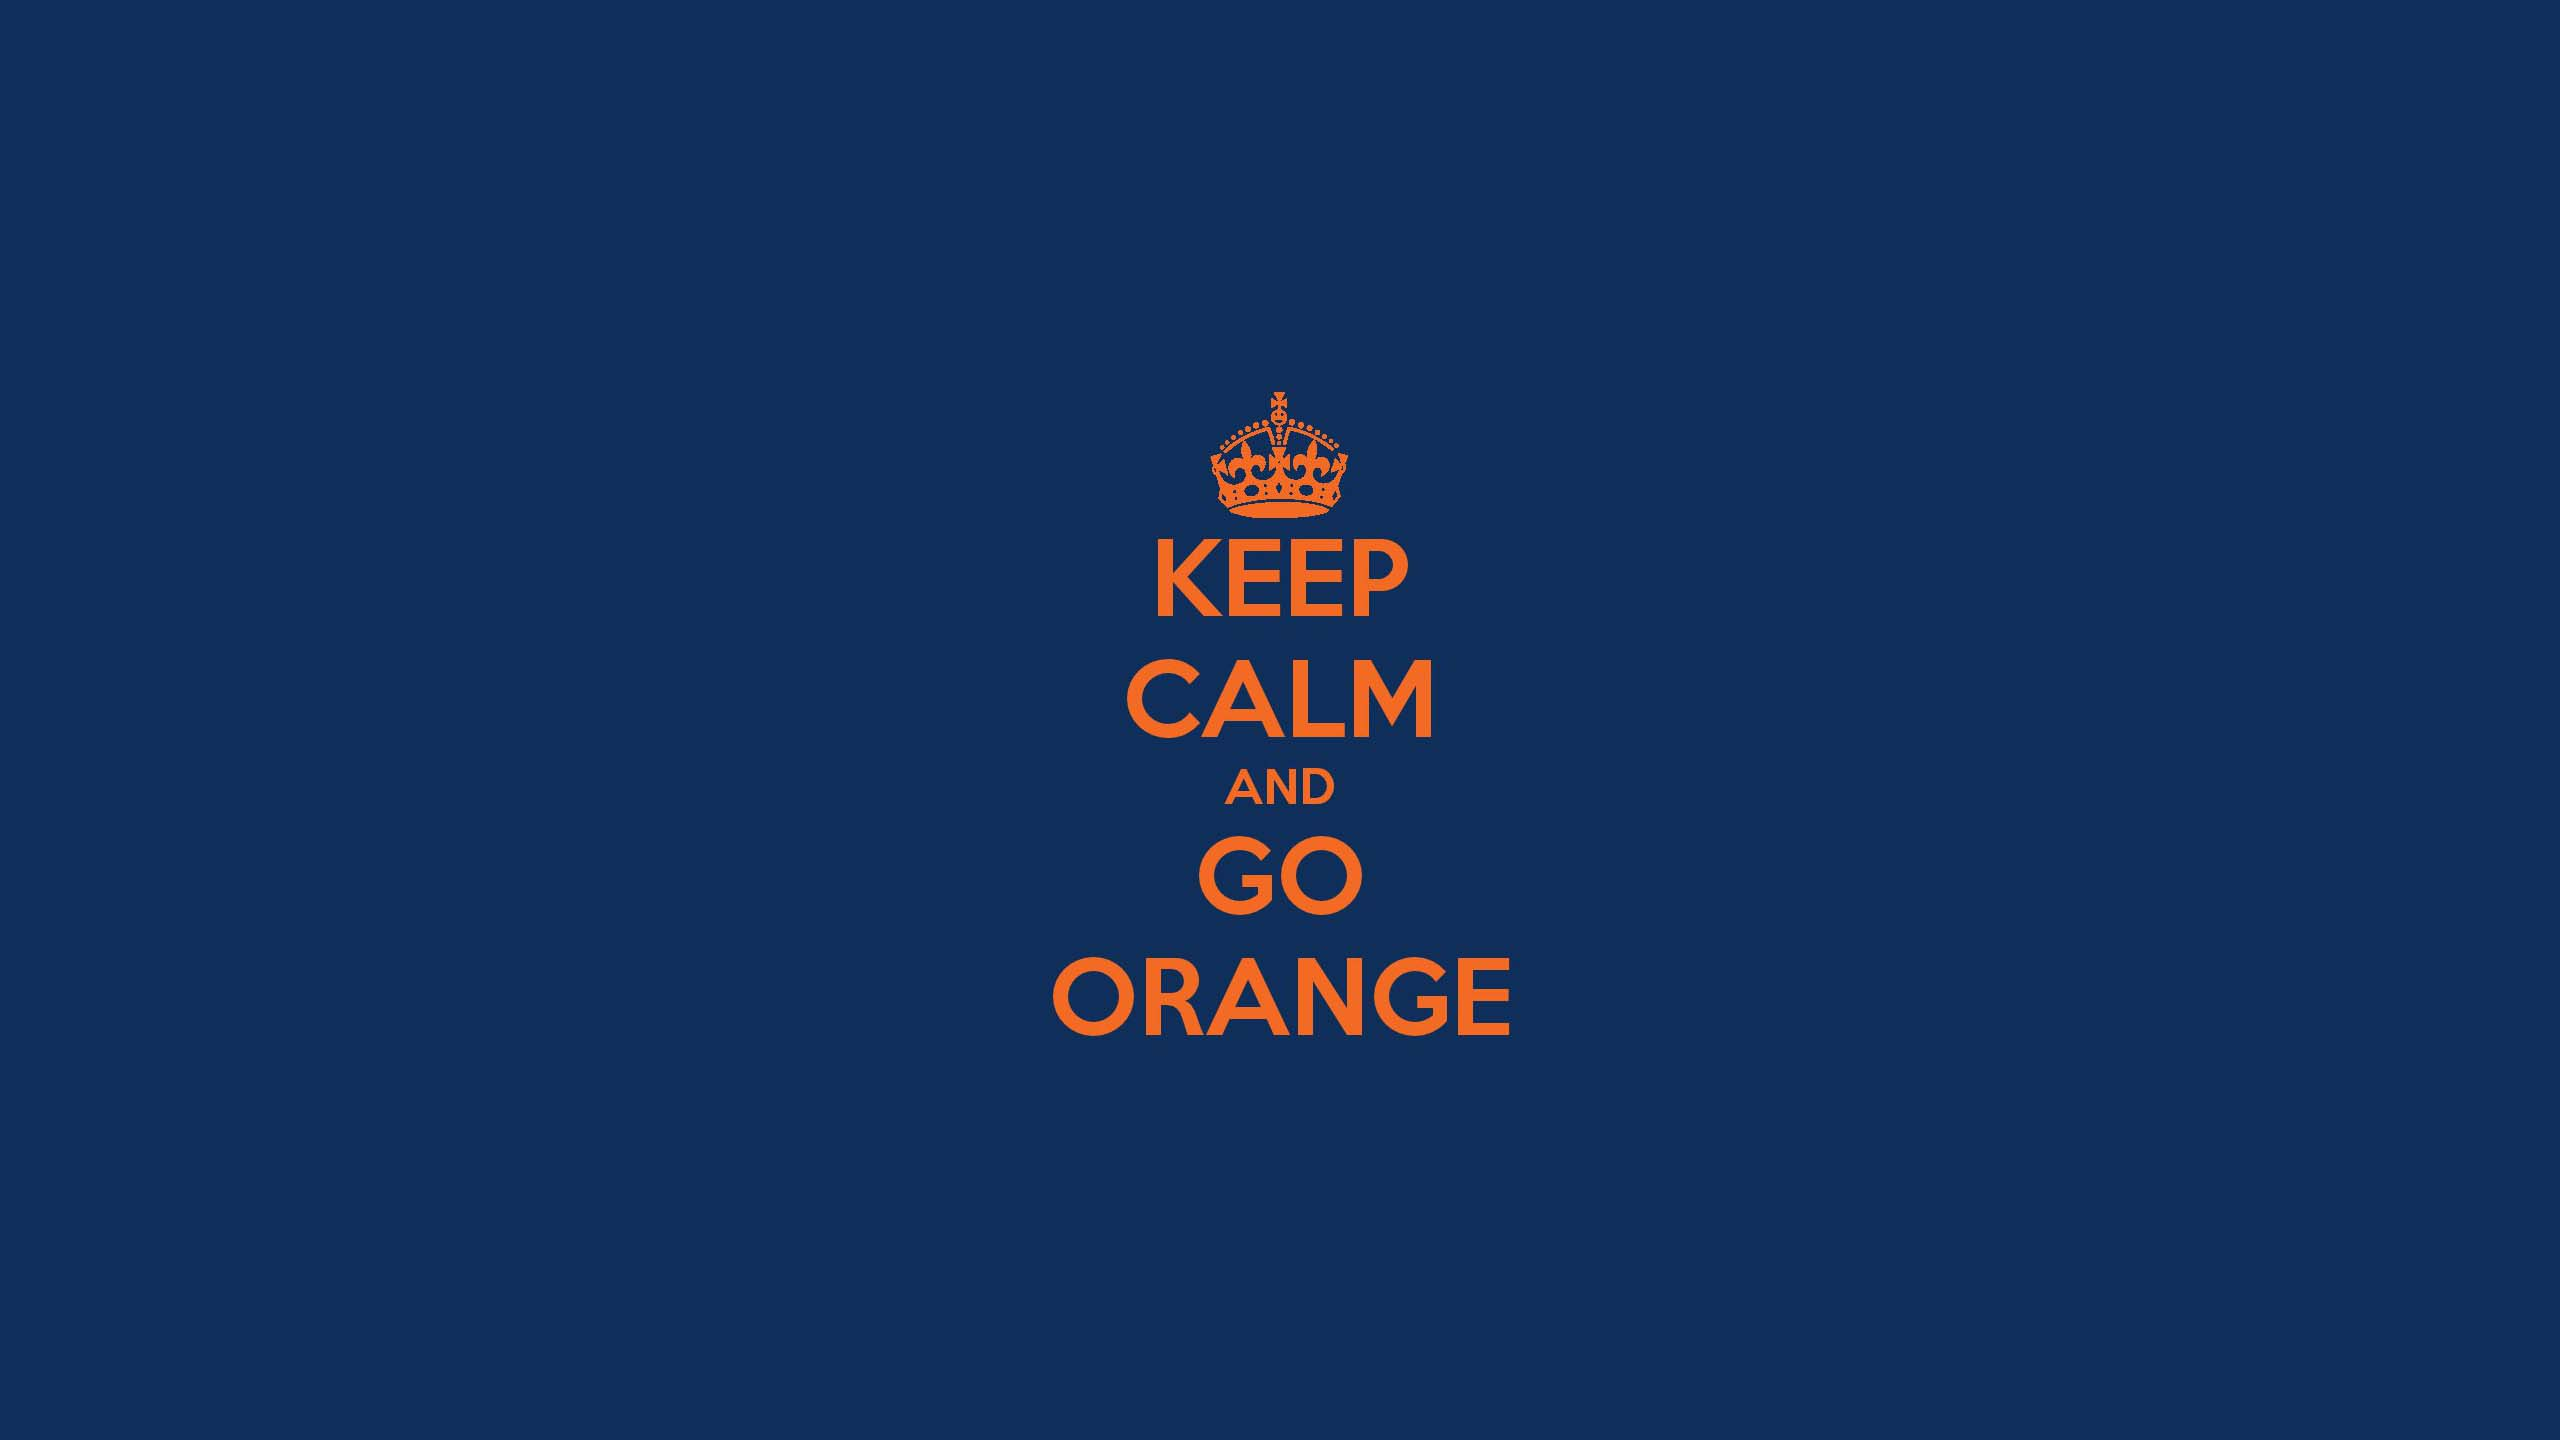 Syracuse - Keep Calm & Go Orange